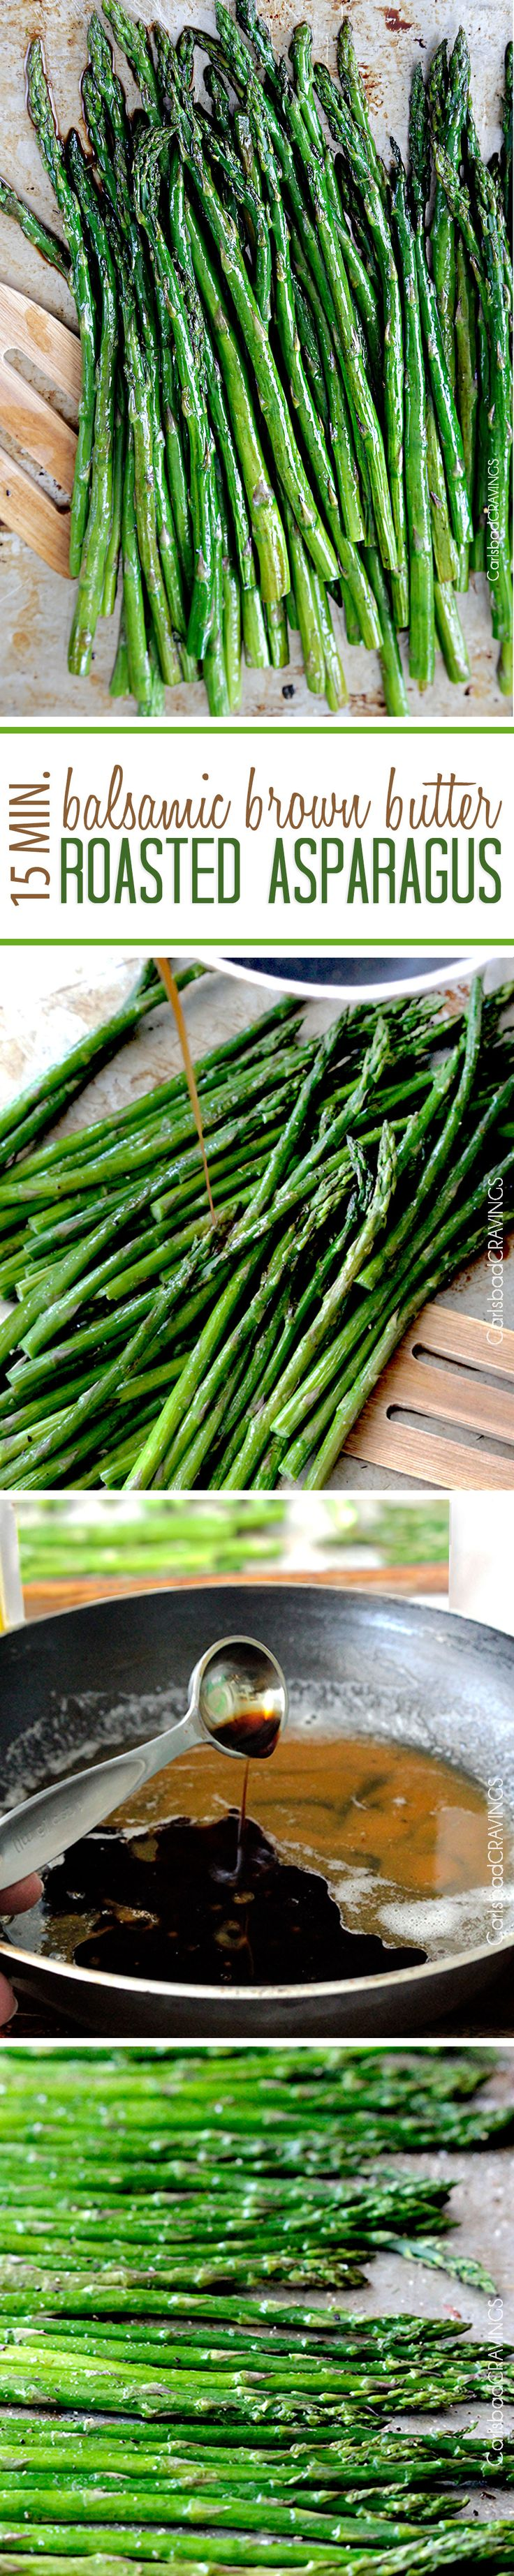 15 Minute Balsamic Brown Butter Roasted Asparagus